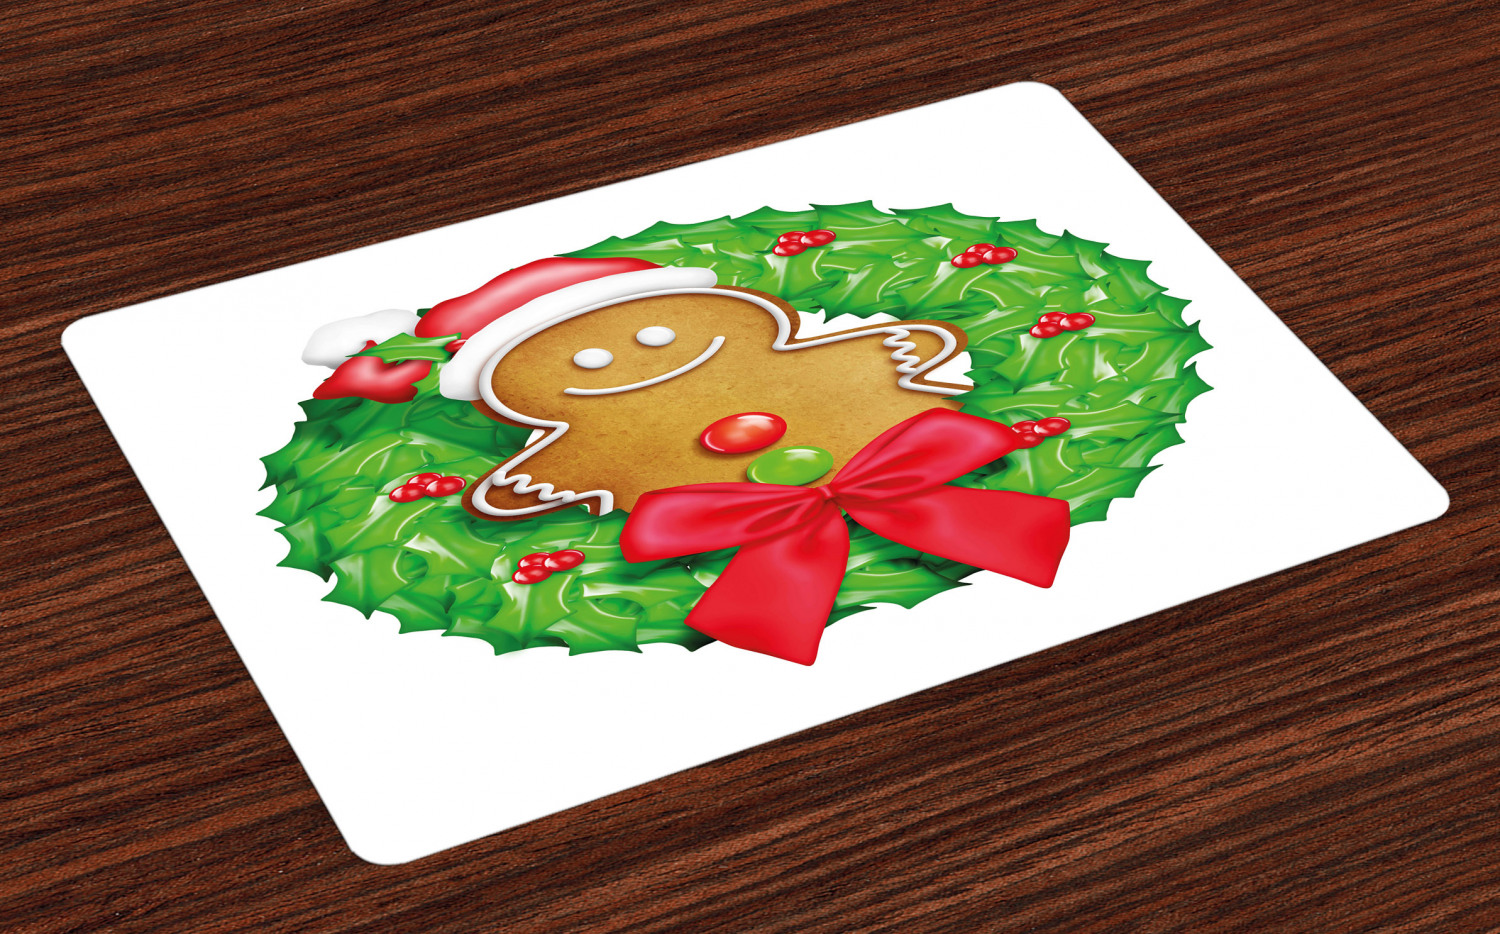 Christmas Decor Cloth Placemats by Spoonflower Set of 4 - Christmas Gingerbread Cookies by twix Holiday Placemats